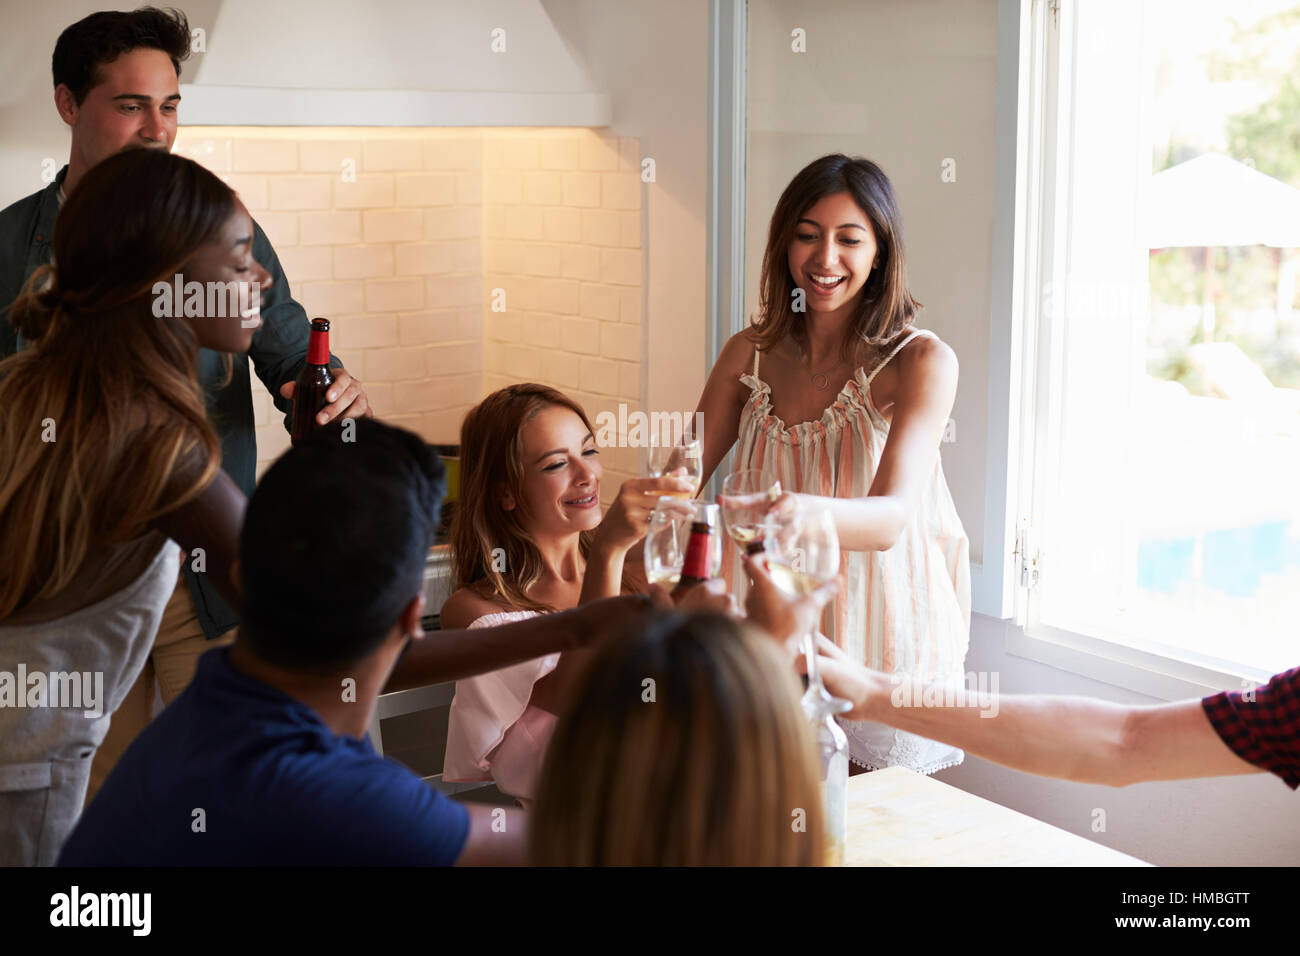 Five friends socialising in the kitchen making a toast - Stock Image